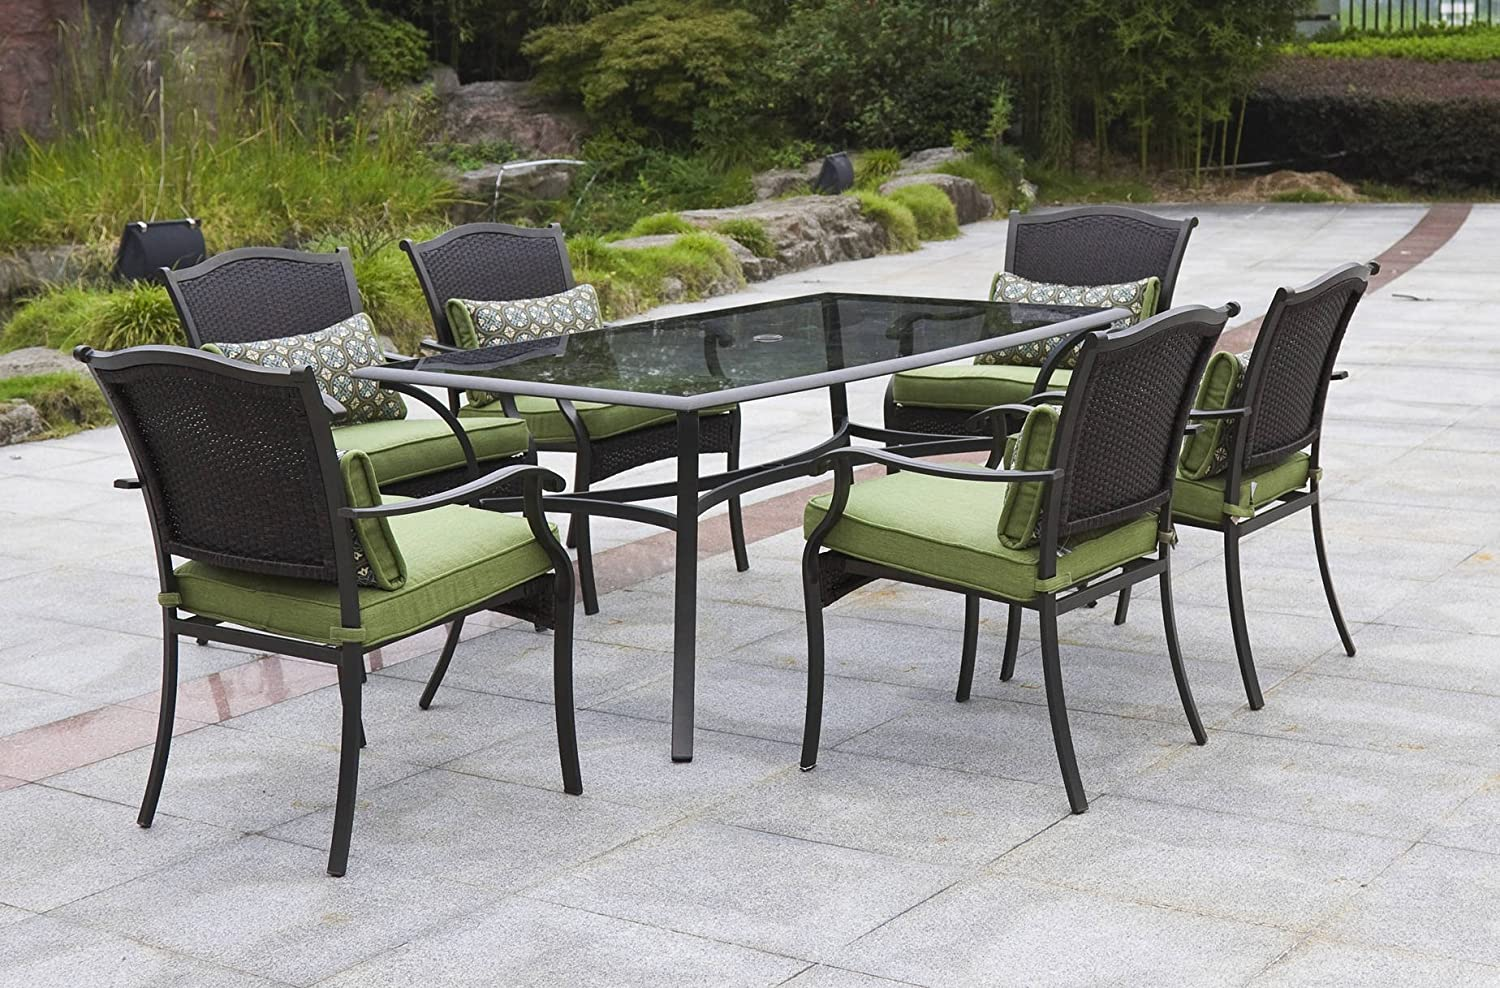 Patio furniture 7 piece dining set garden oasis rockford 7 for Outdoor furniture 7 piece